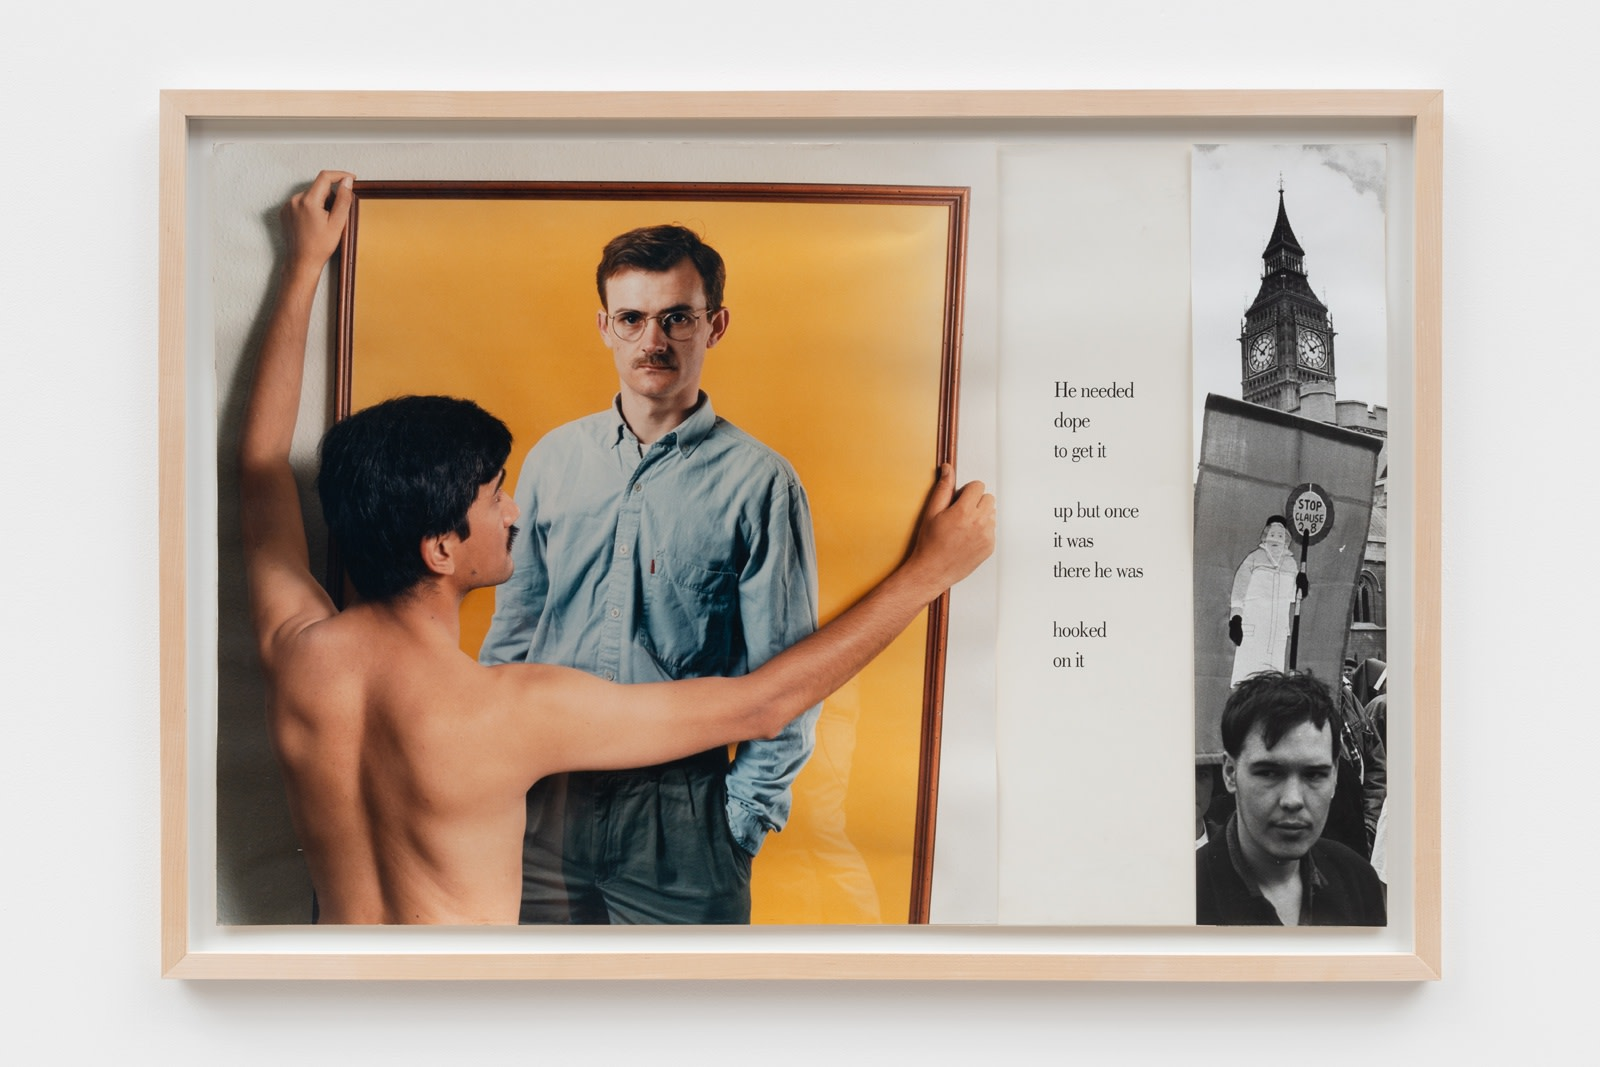 Sunil Gupta, Untitled 5 from the series 'Pretended' Family Relationships, 1988